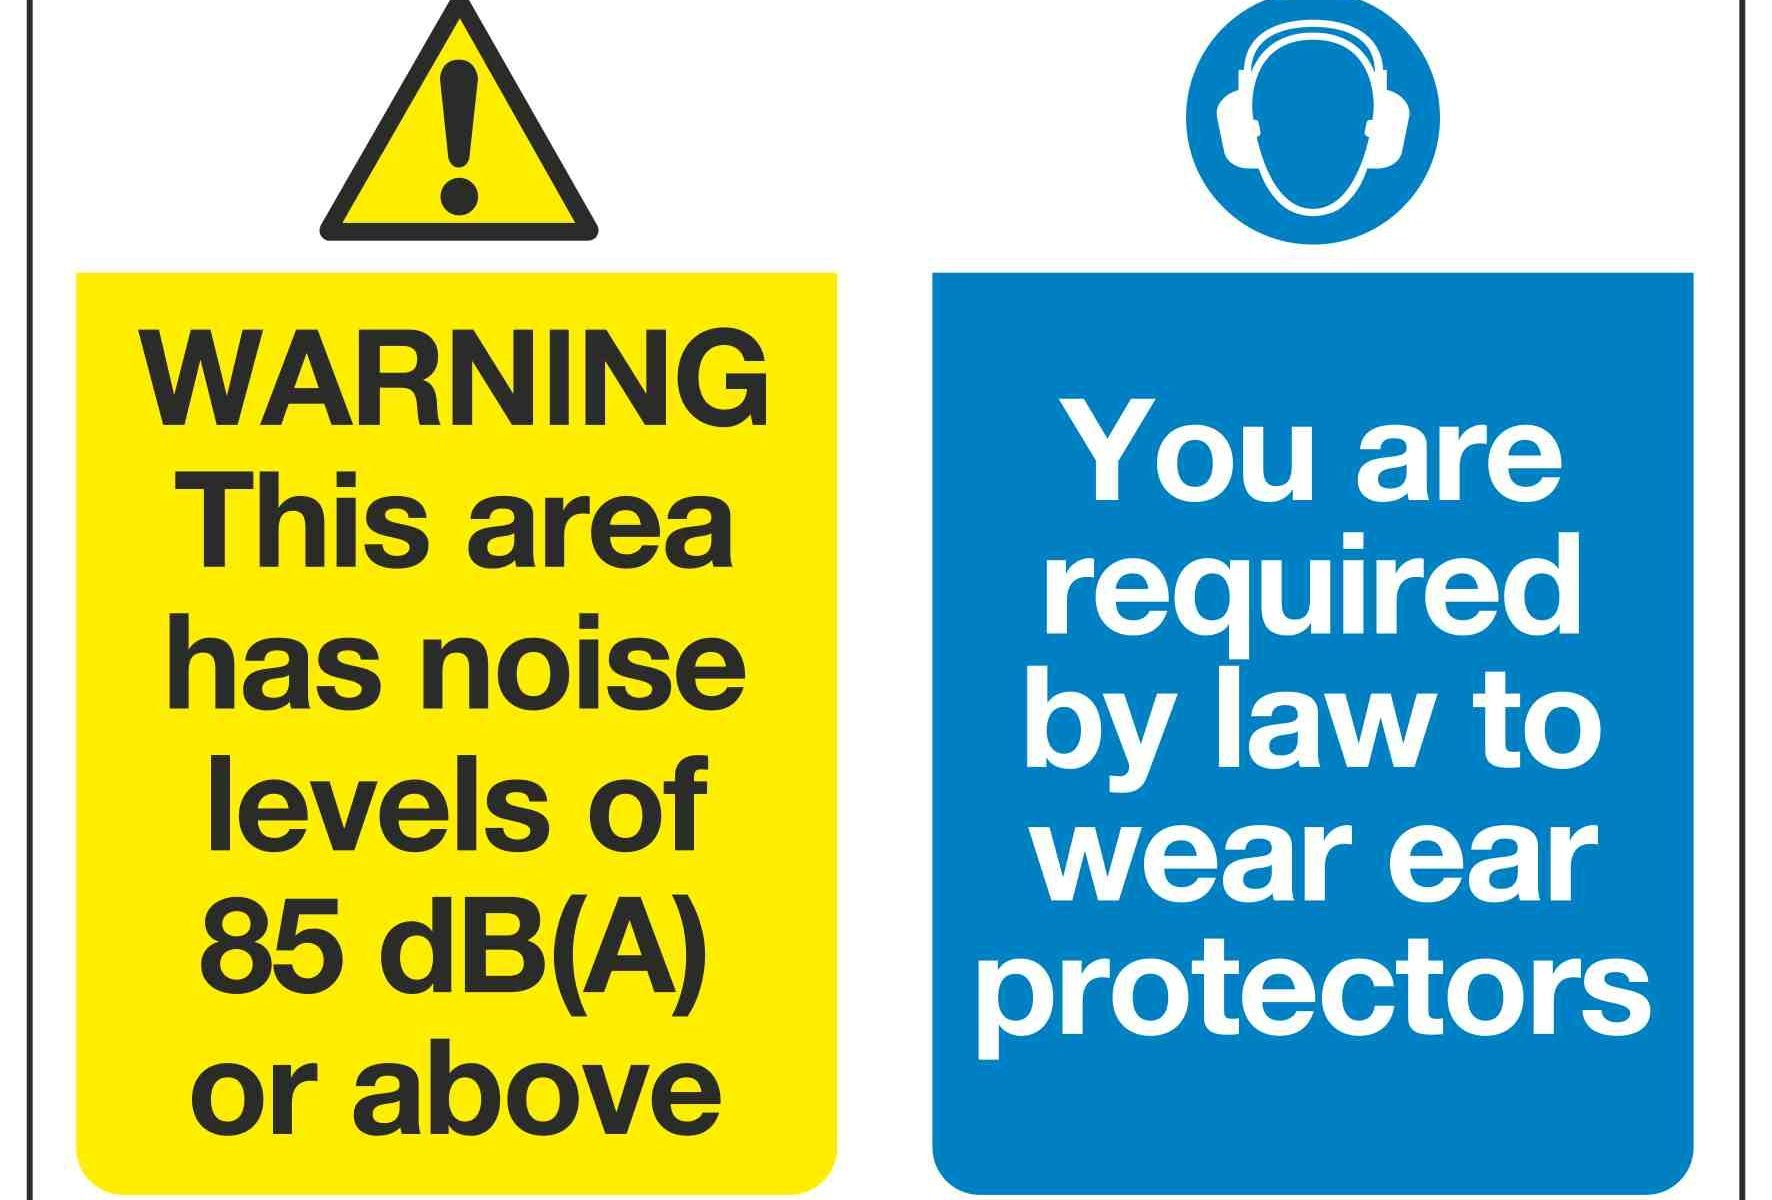 WARNING This area has noise levels of 85 dB